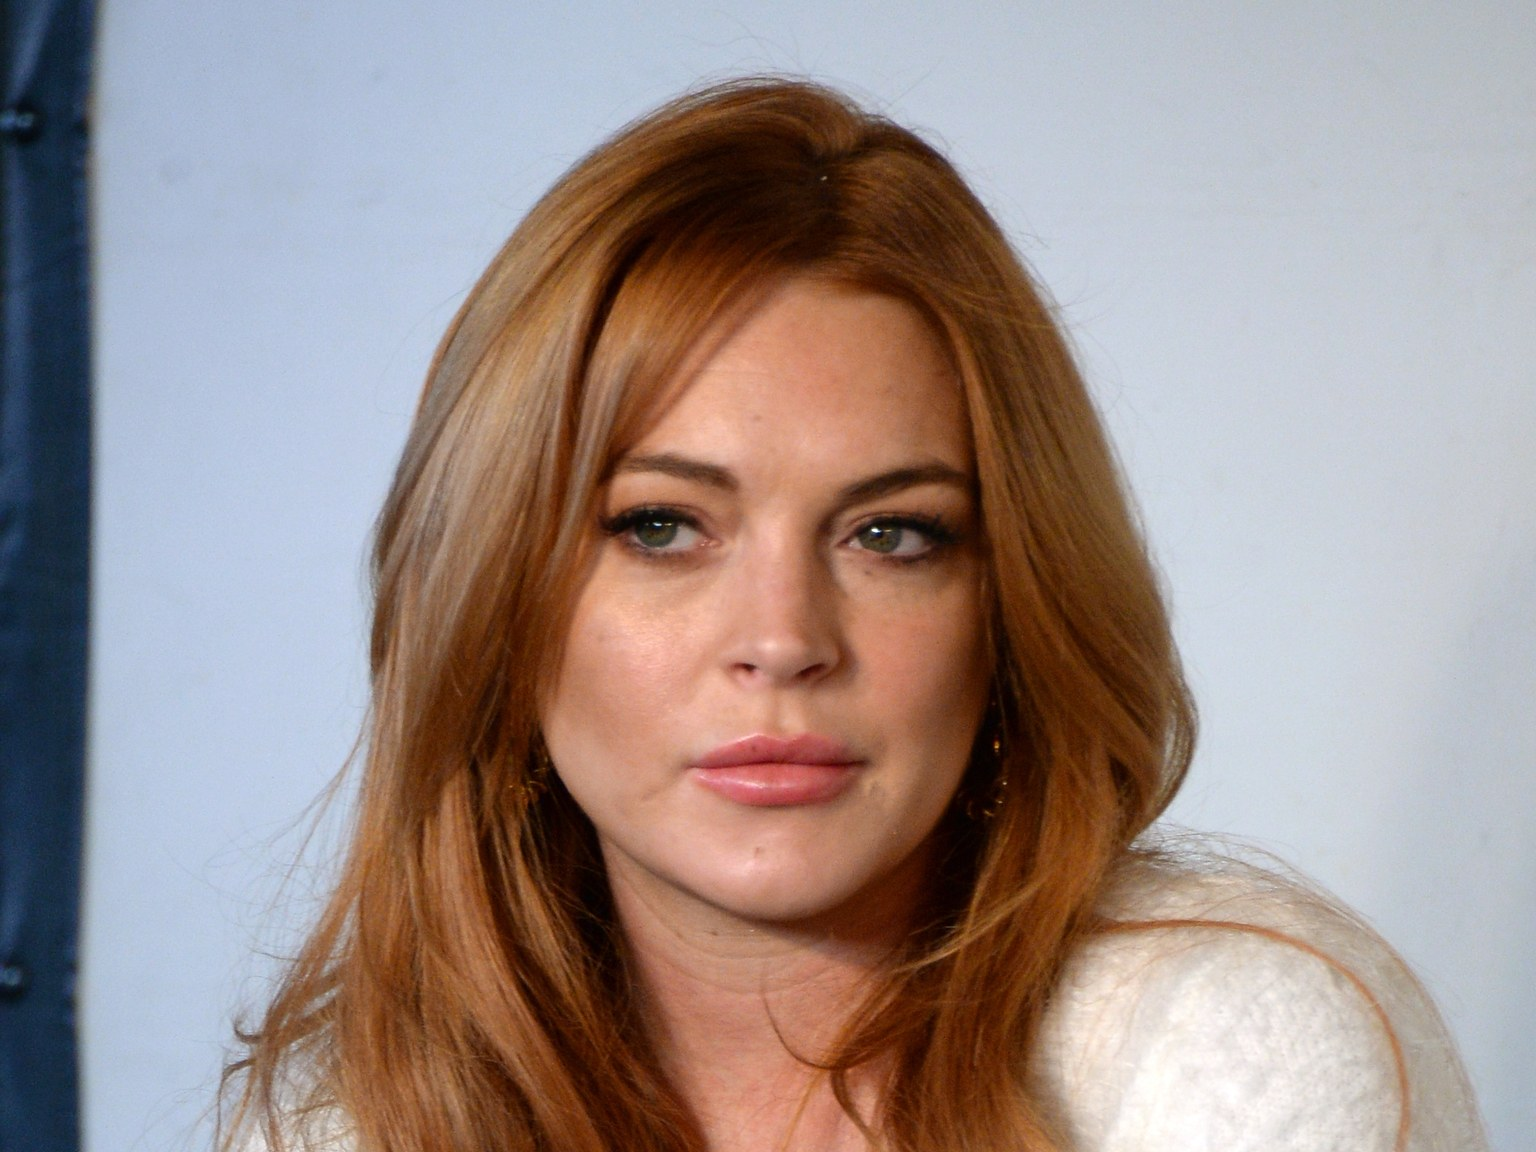 Why Lindsay Lohan's staff wanted to work for her